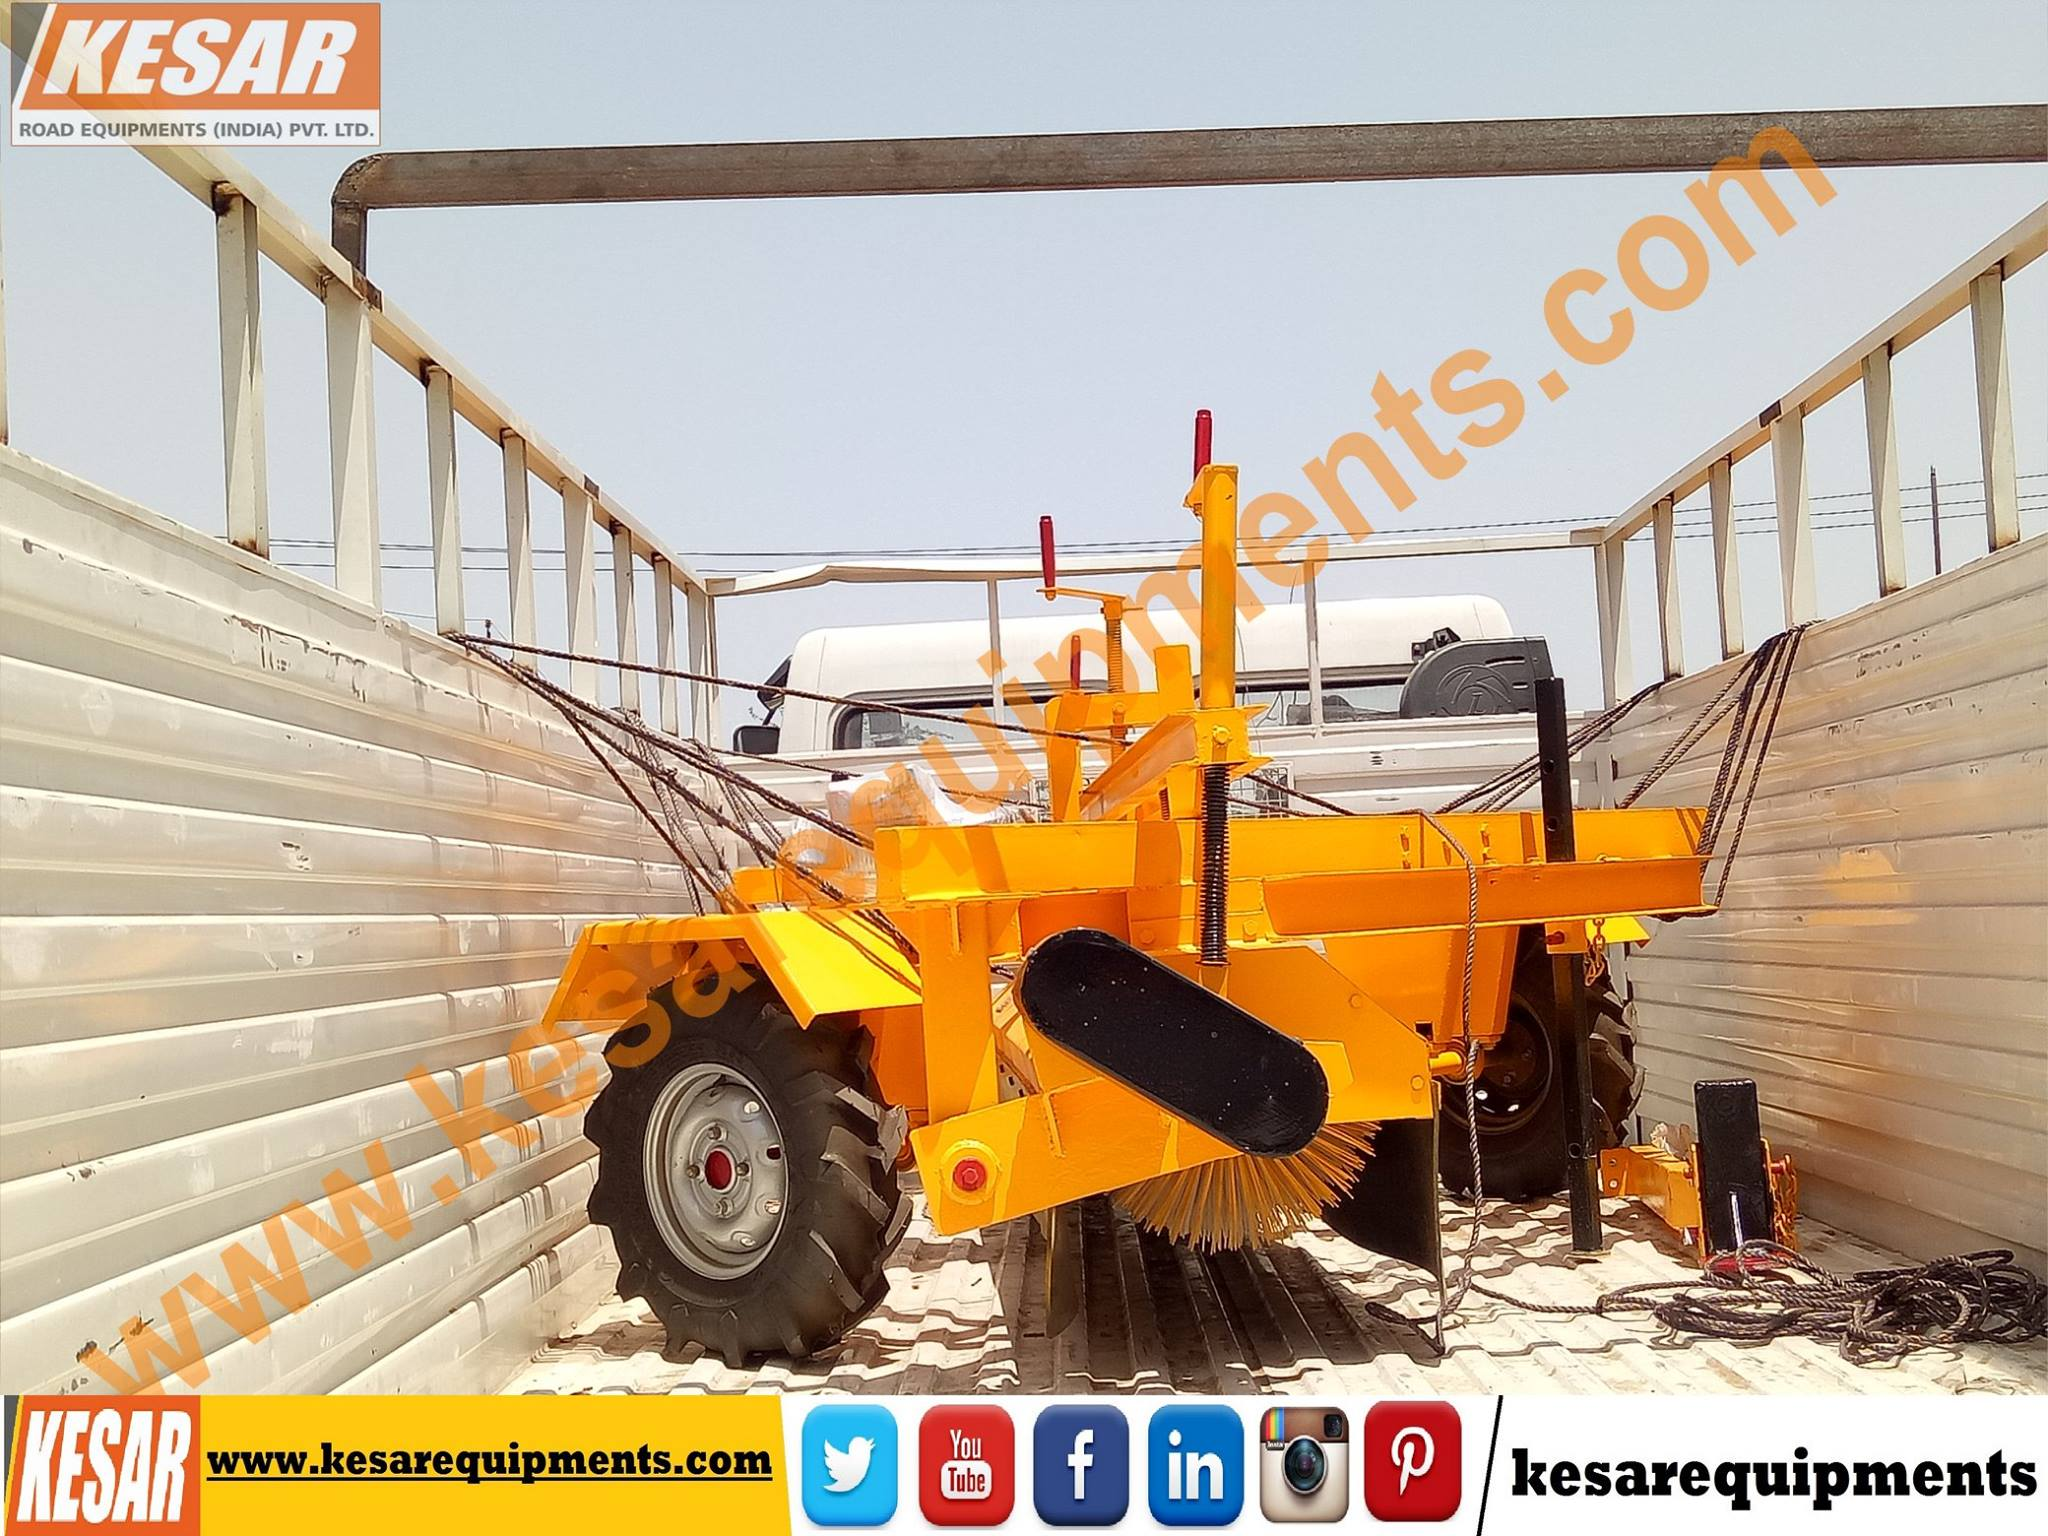 Today We Dispatched Hydraulic Broomer(Road Sweeper) At Maharashtra, India  We Are Manufacturer Of Asphalt Hot mix Type Drum Mix Plant In Mehsana, Gujarat, India. www.kesarequipments.com